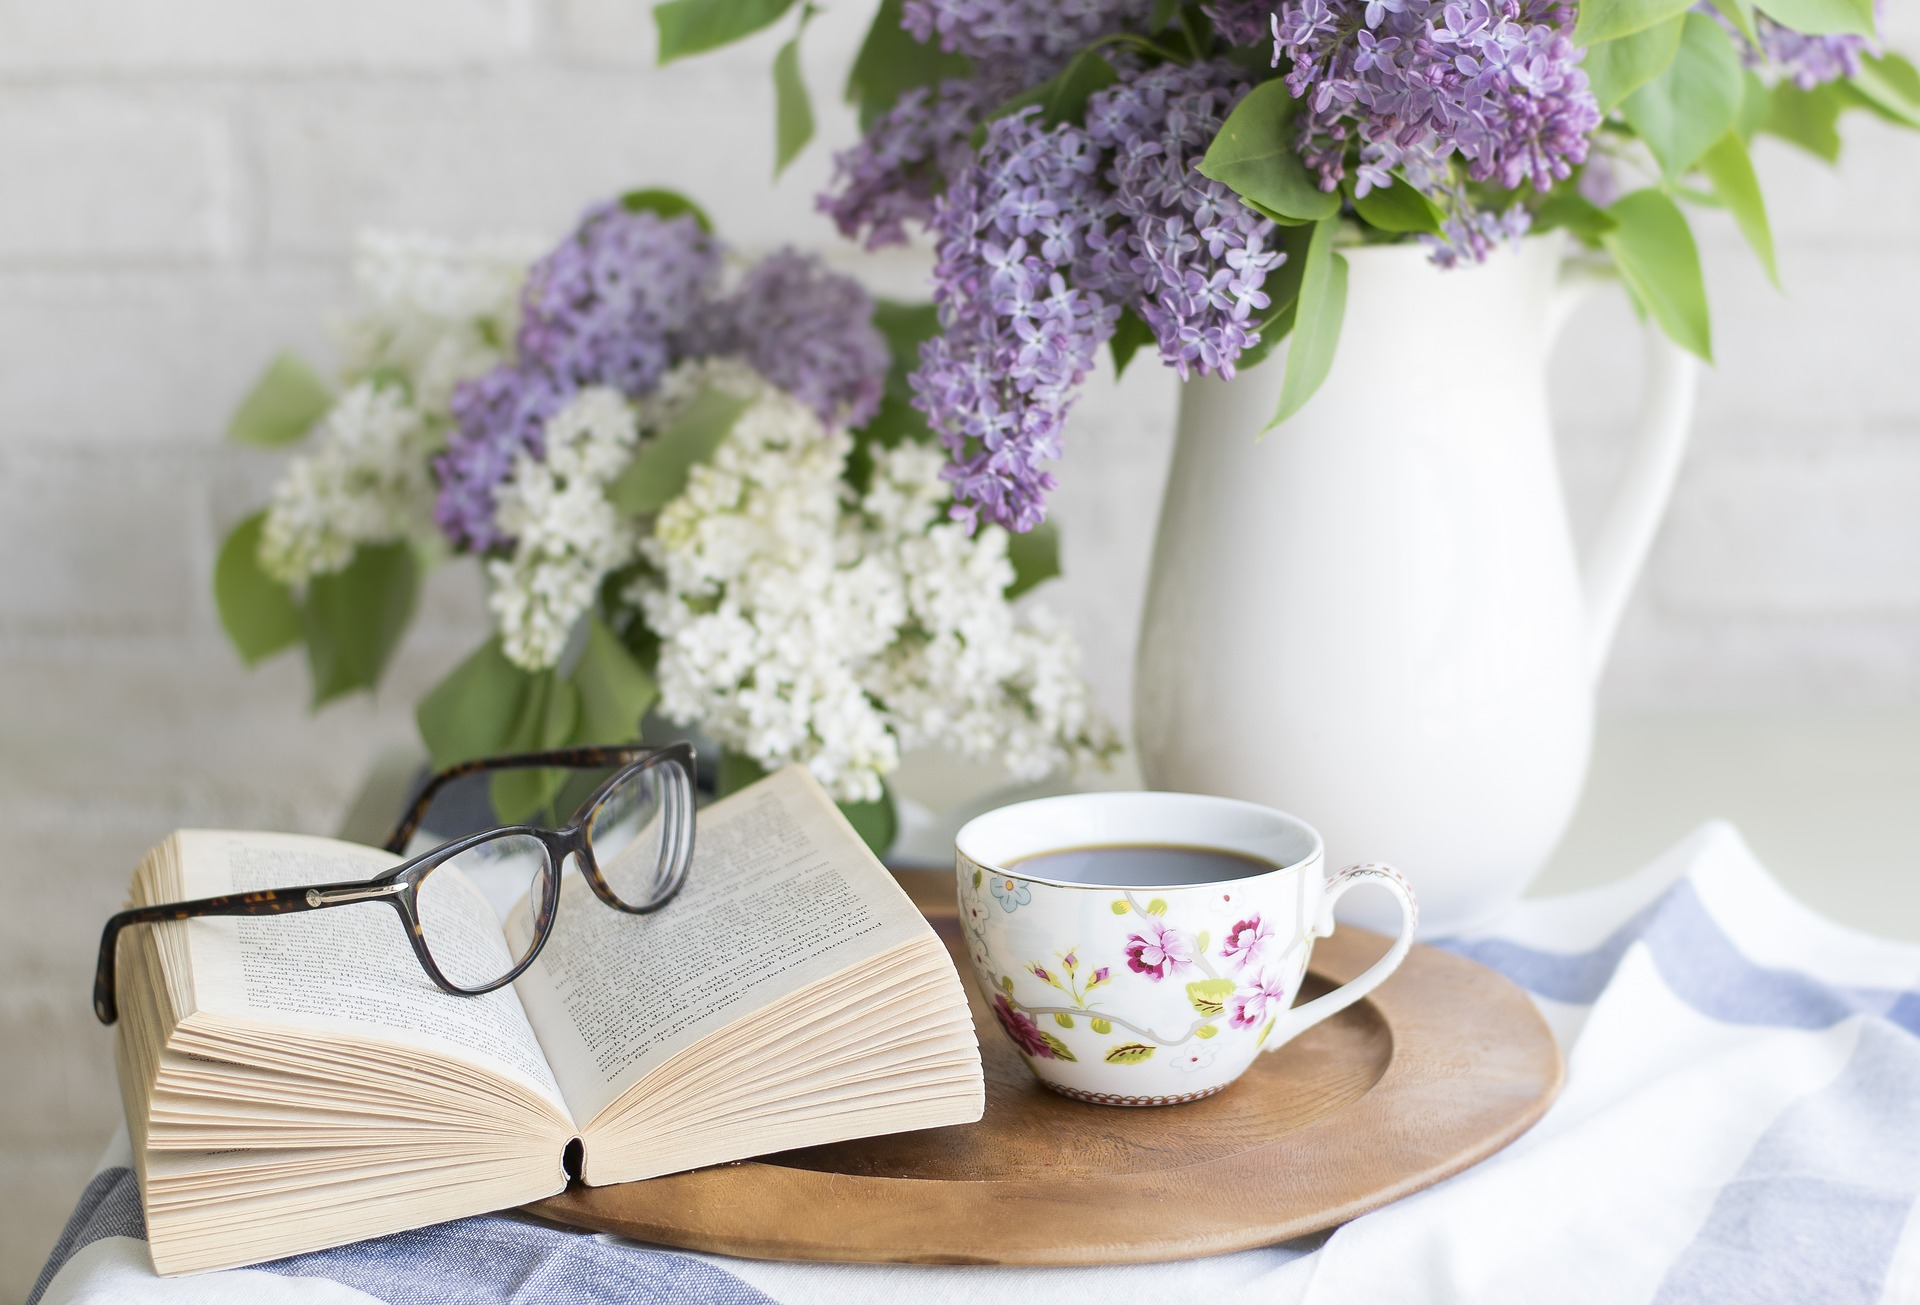 10 Benefits of Reading for Personal Growth